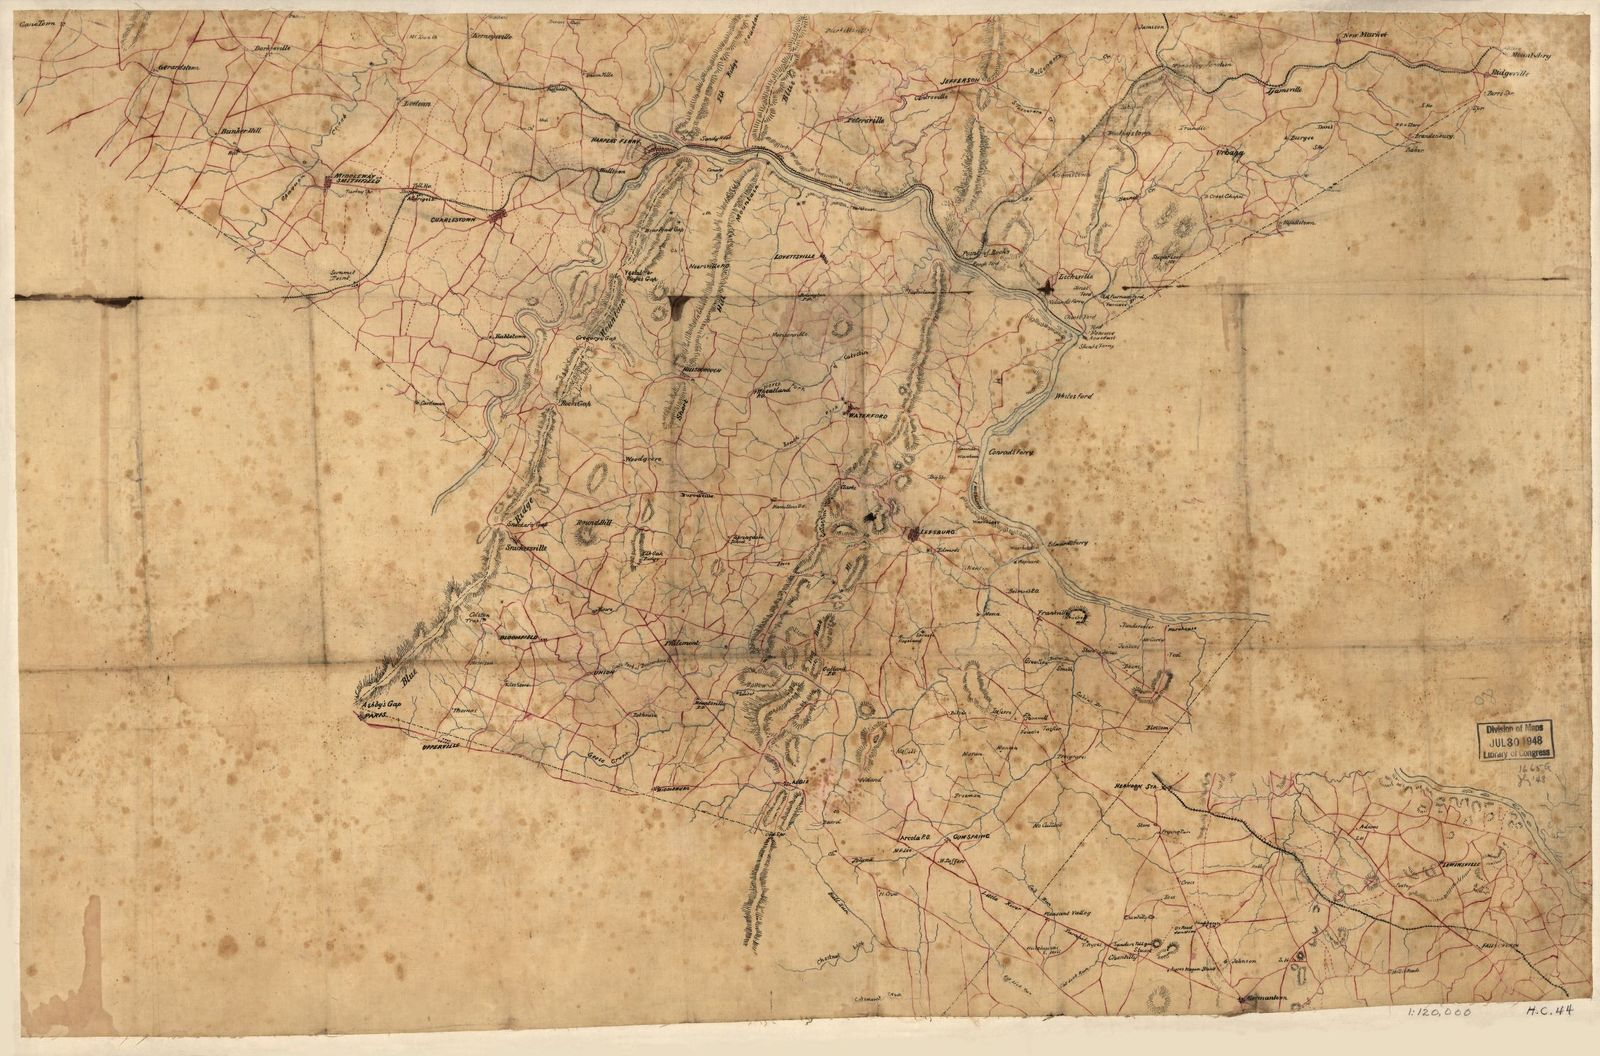 [Map of Loudoun County, Va., and parts of Fairfax County, Va., Jefferson County, W.Va., and Washington and Frederick counties, Md.].